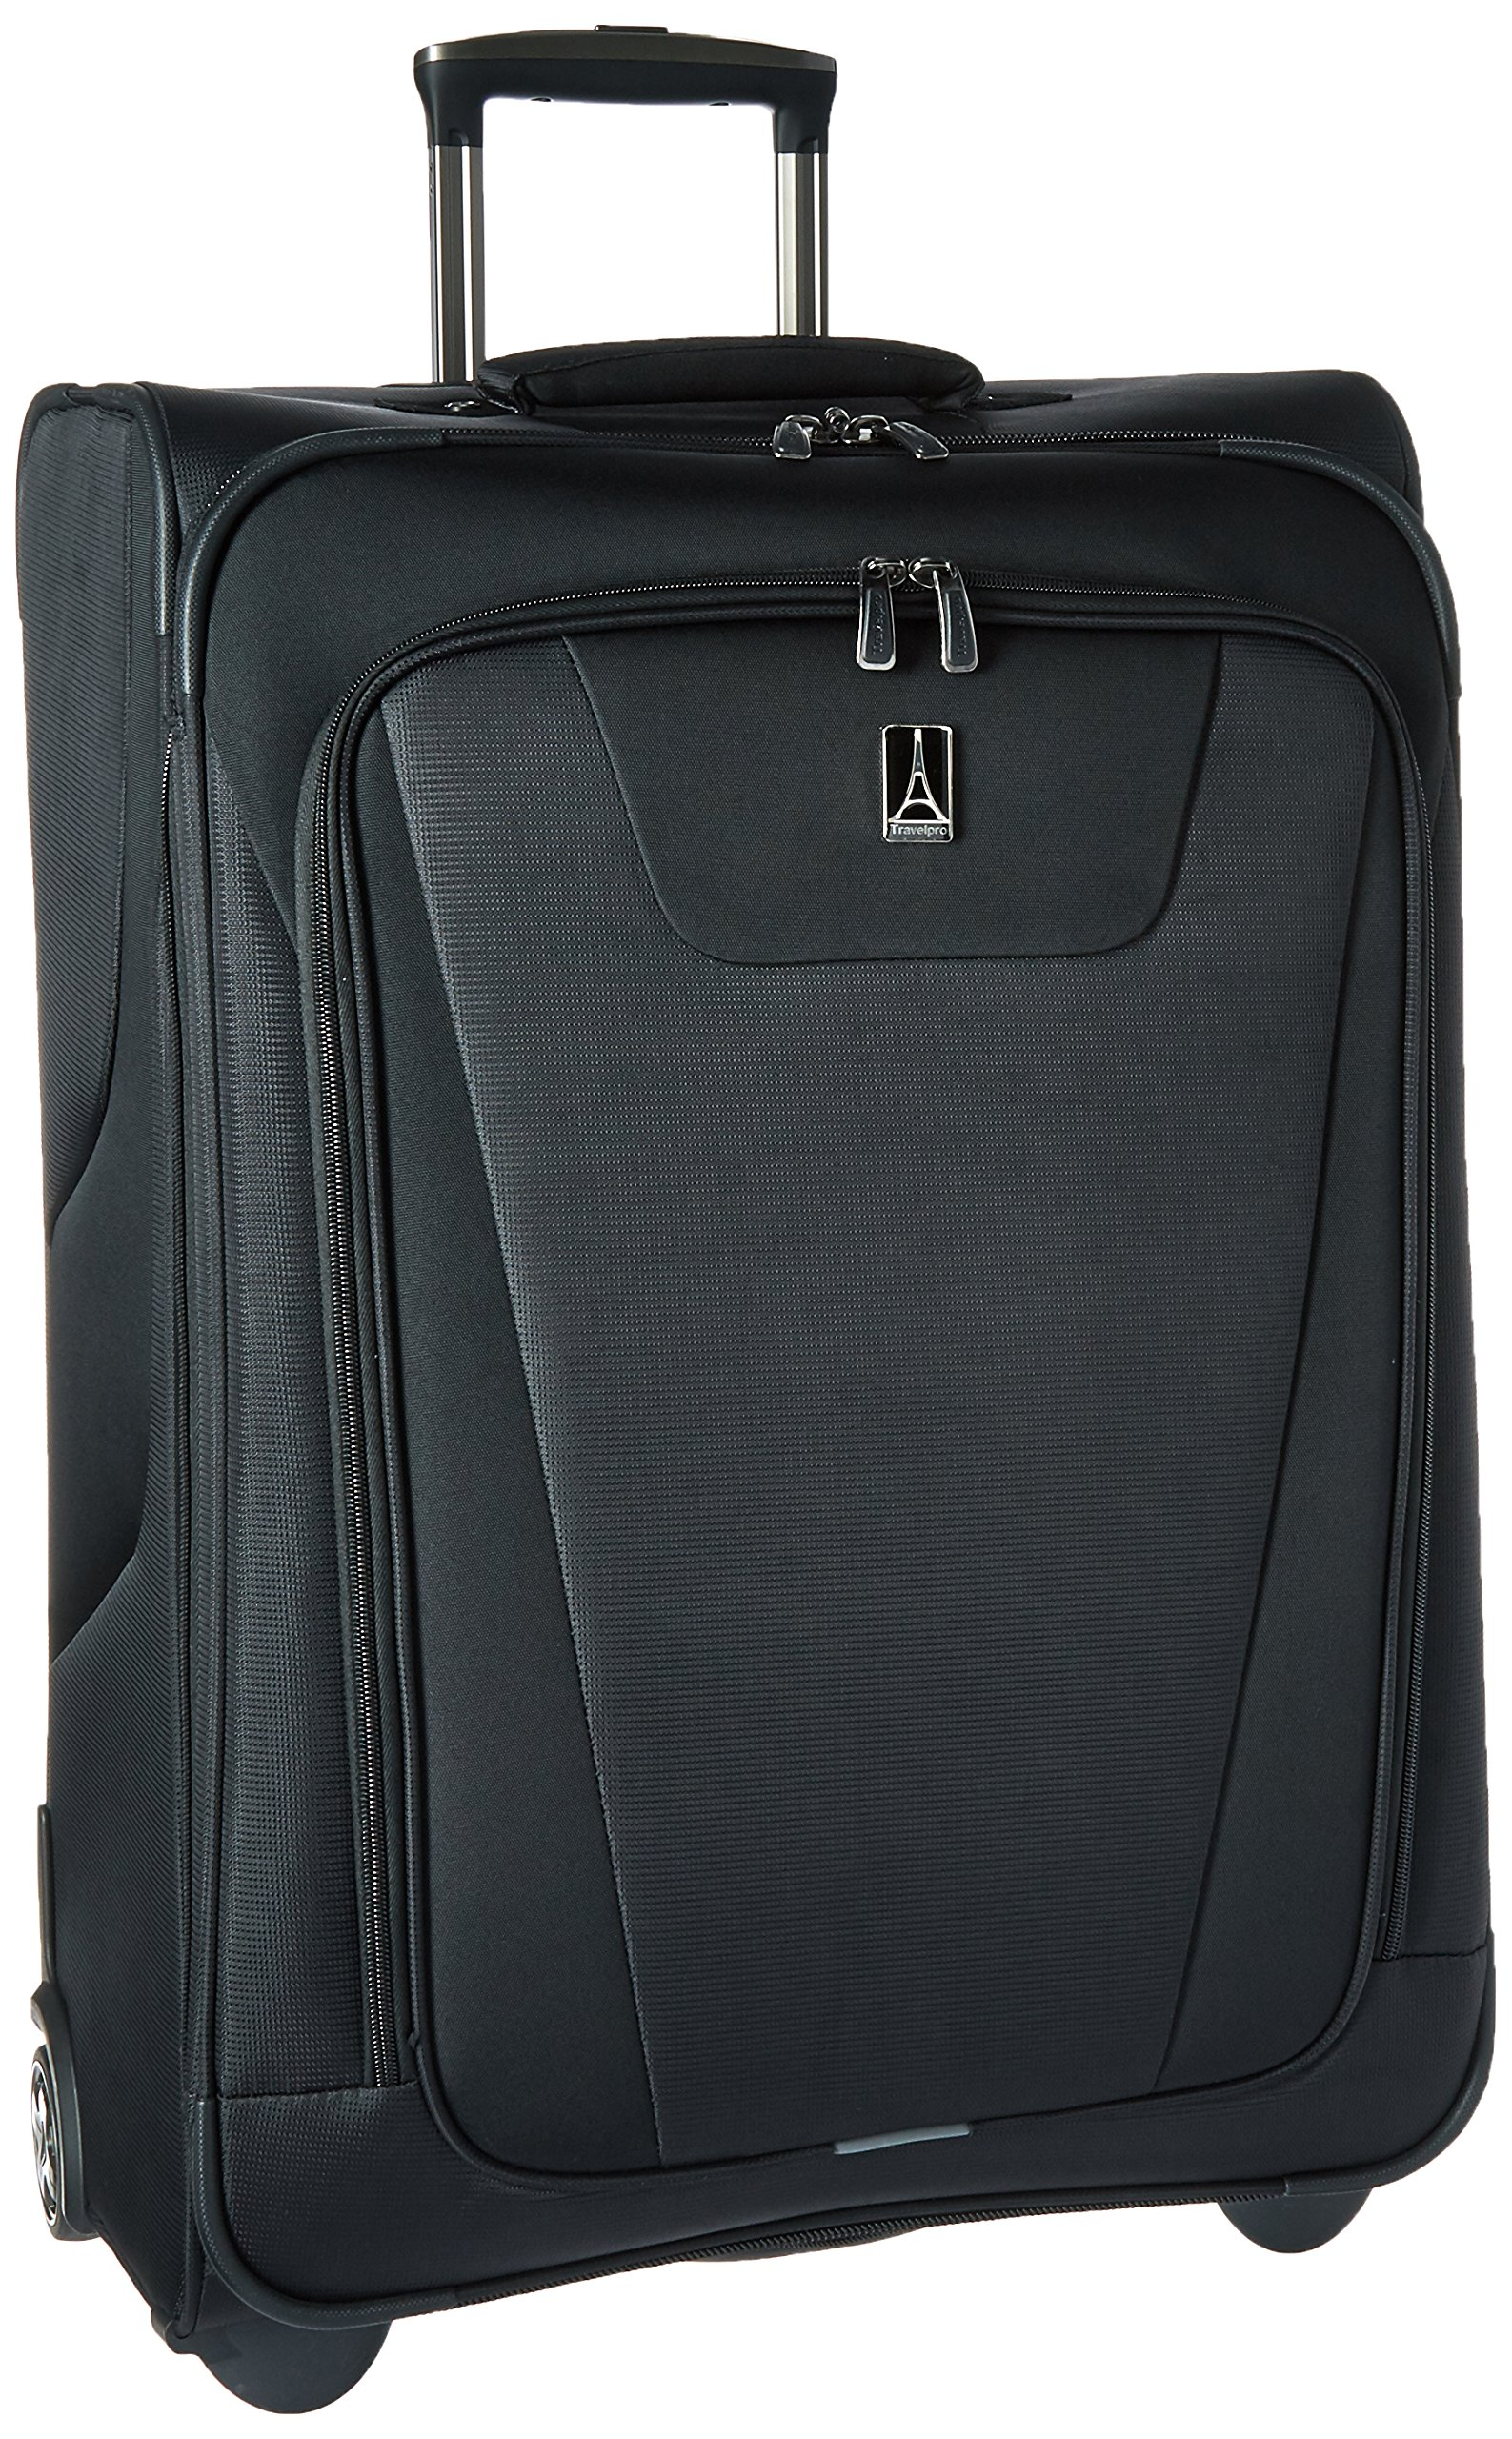 Travelpro Maxlite 4 Expandable Rollaboard 26 inch Suitcase, Black by Travelpro (Image #1)